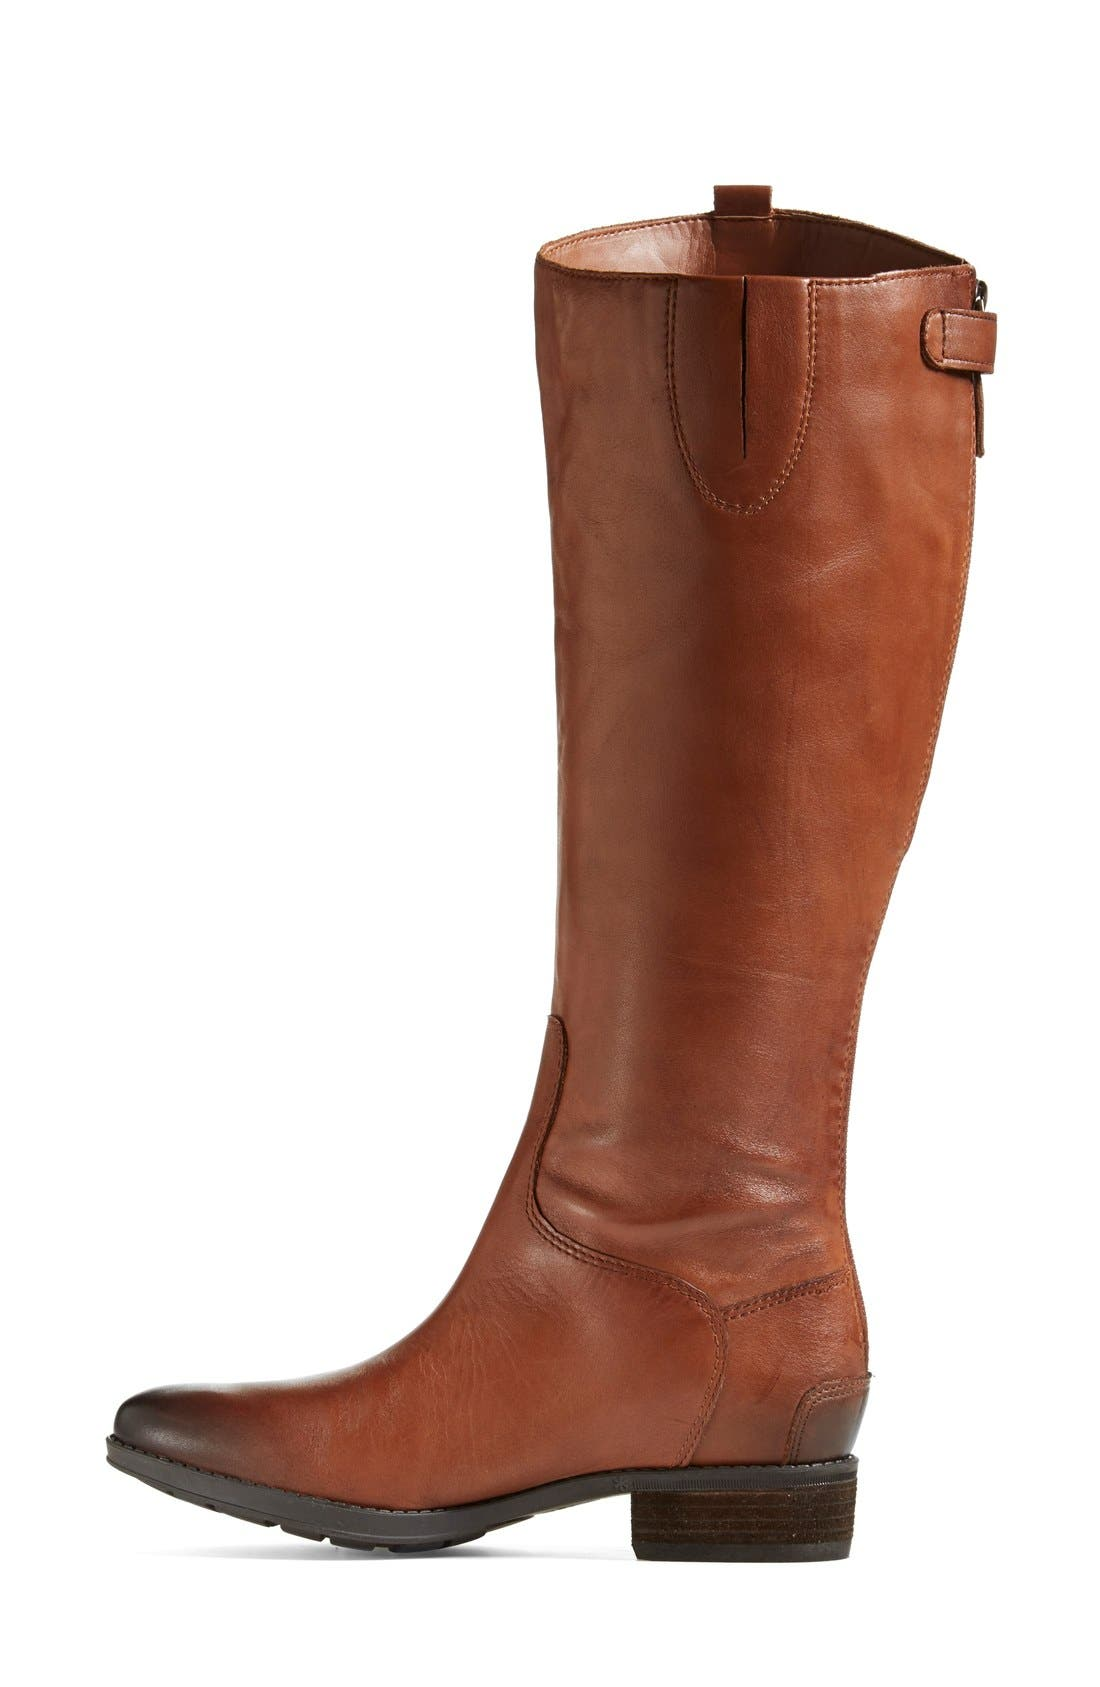 'Penny' Boot,                             Alternate thumbnail 9, color,                             WHISKEY WIDE CALF